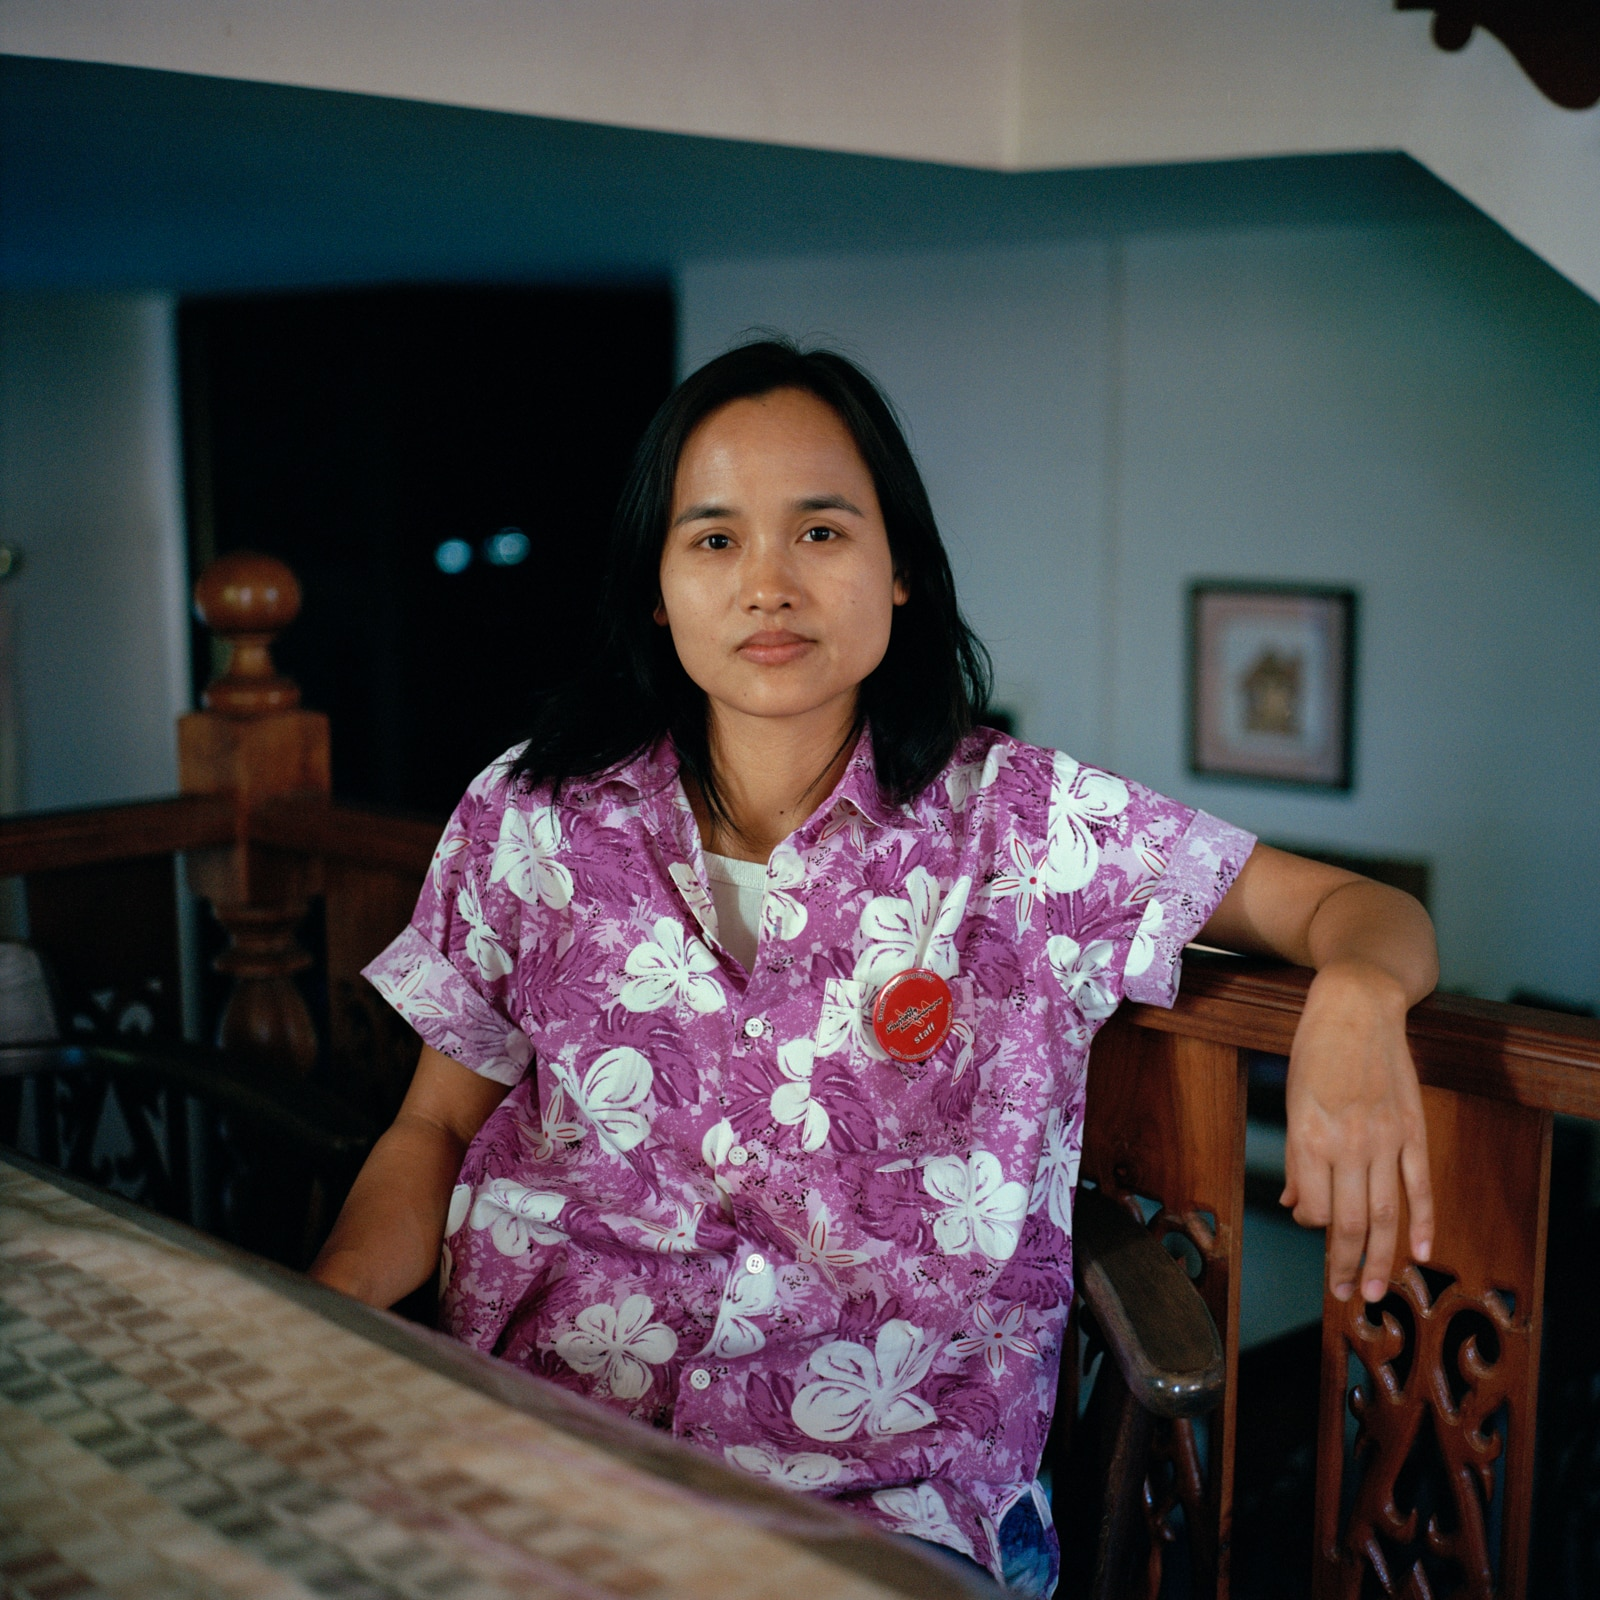 Fon, 34, has worked at the centre for a year. She looks after Beda with two other caregivers in eight-hour shifts. The nursing staff earns around 9,000 Thai bahts per month (around CHF250).